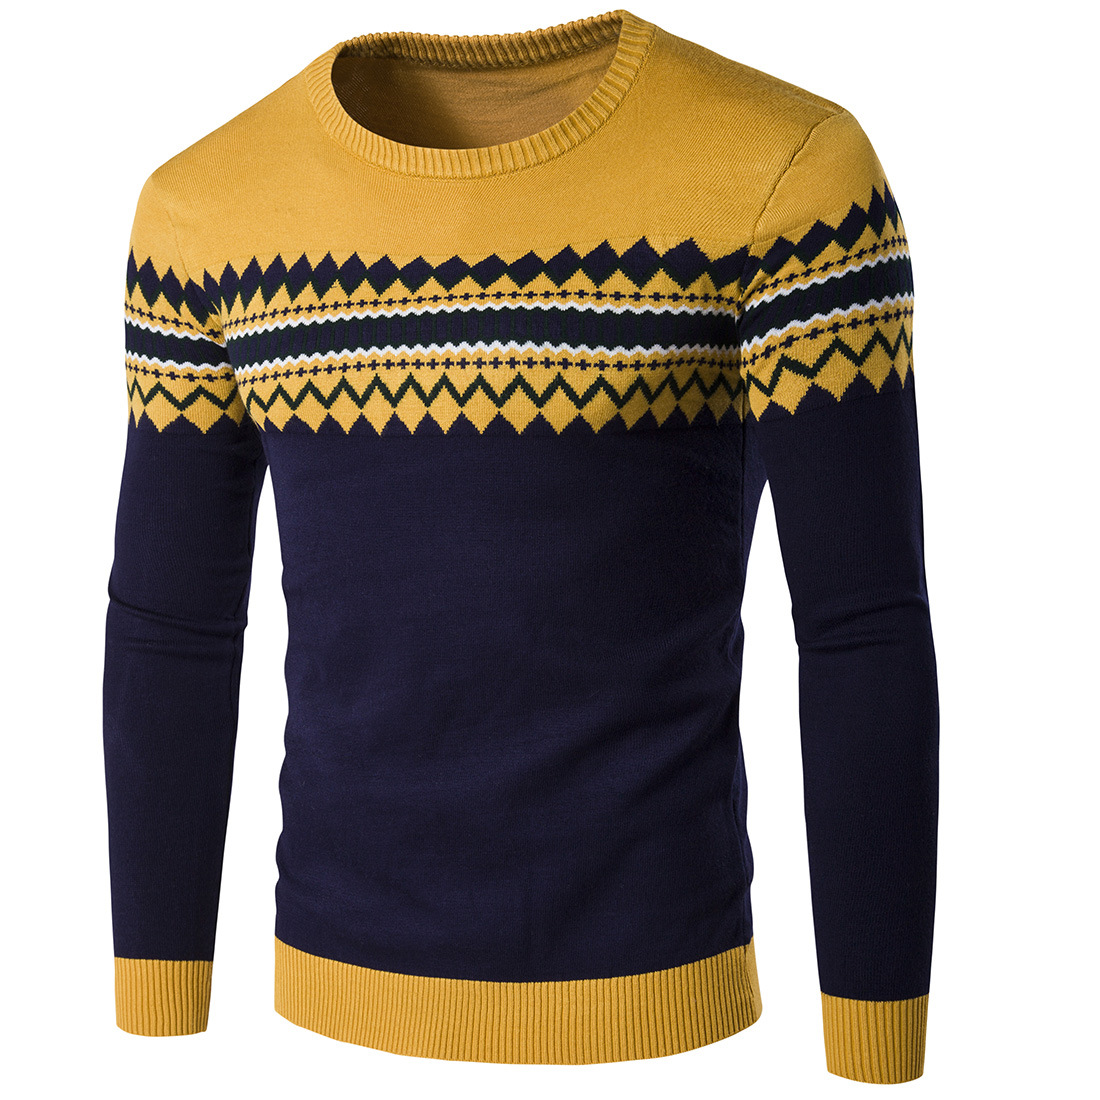 Men's Sweater 2018 New Autumn Winter Pullover Men Sweaters Cotton Casual O Neck Sweater Jumpers Thin Male Knitwear Top